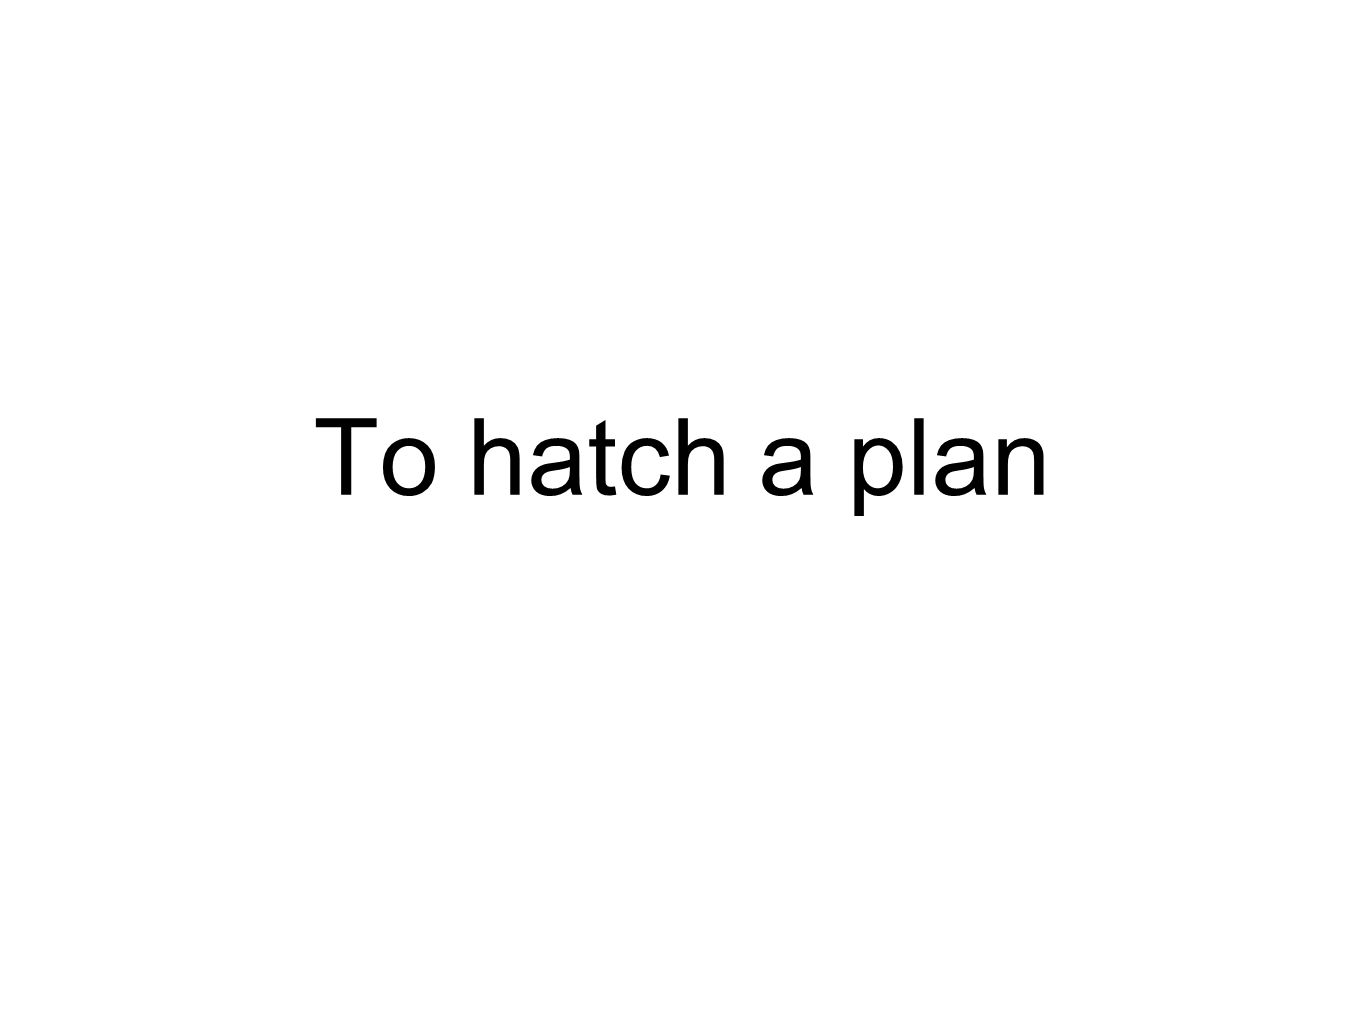 To hatch a plan